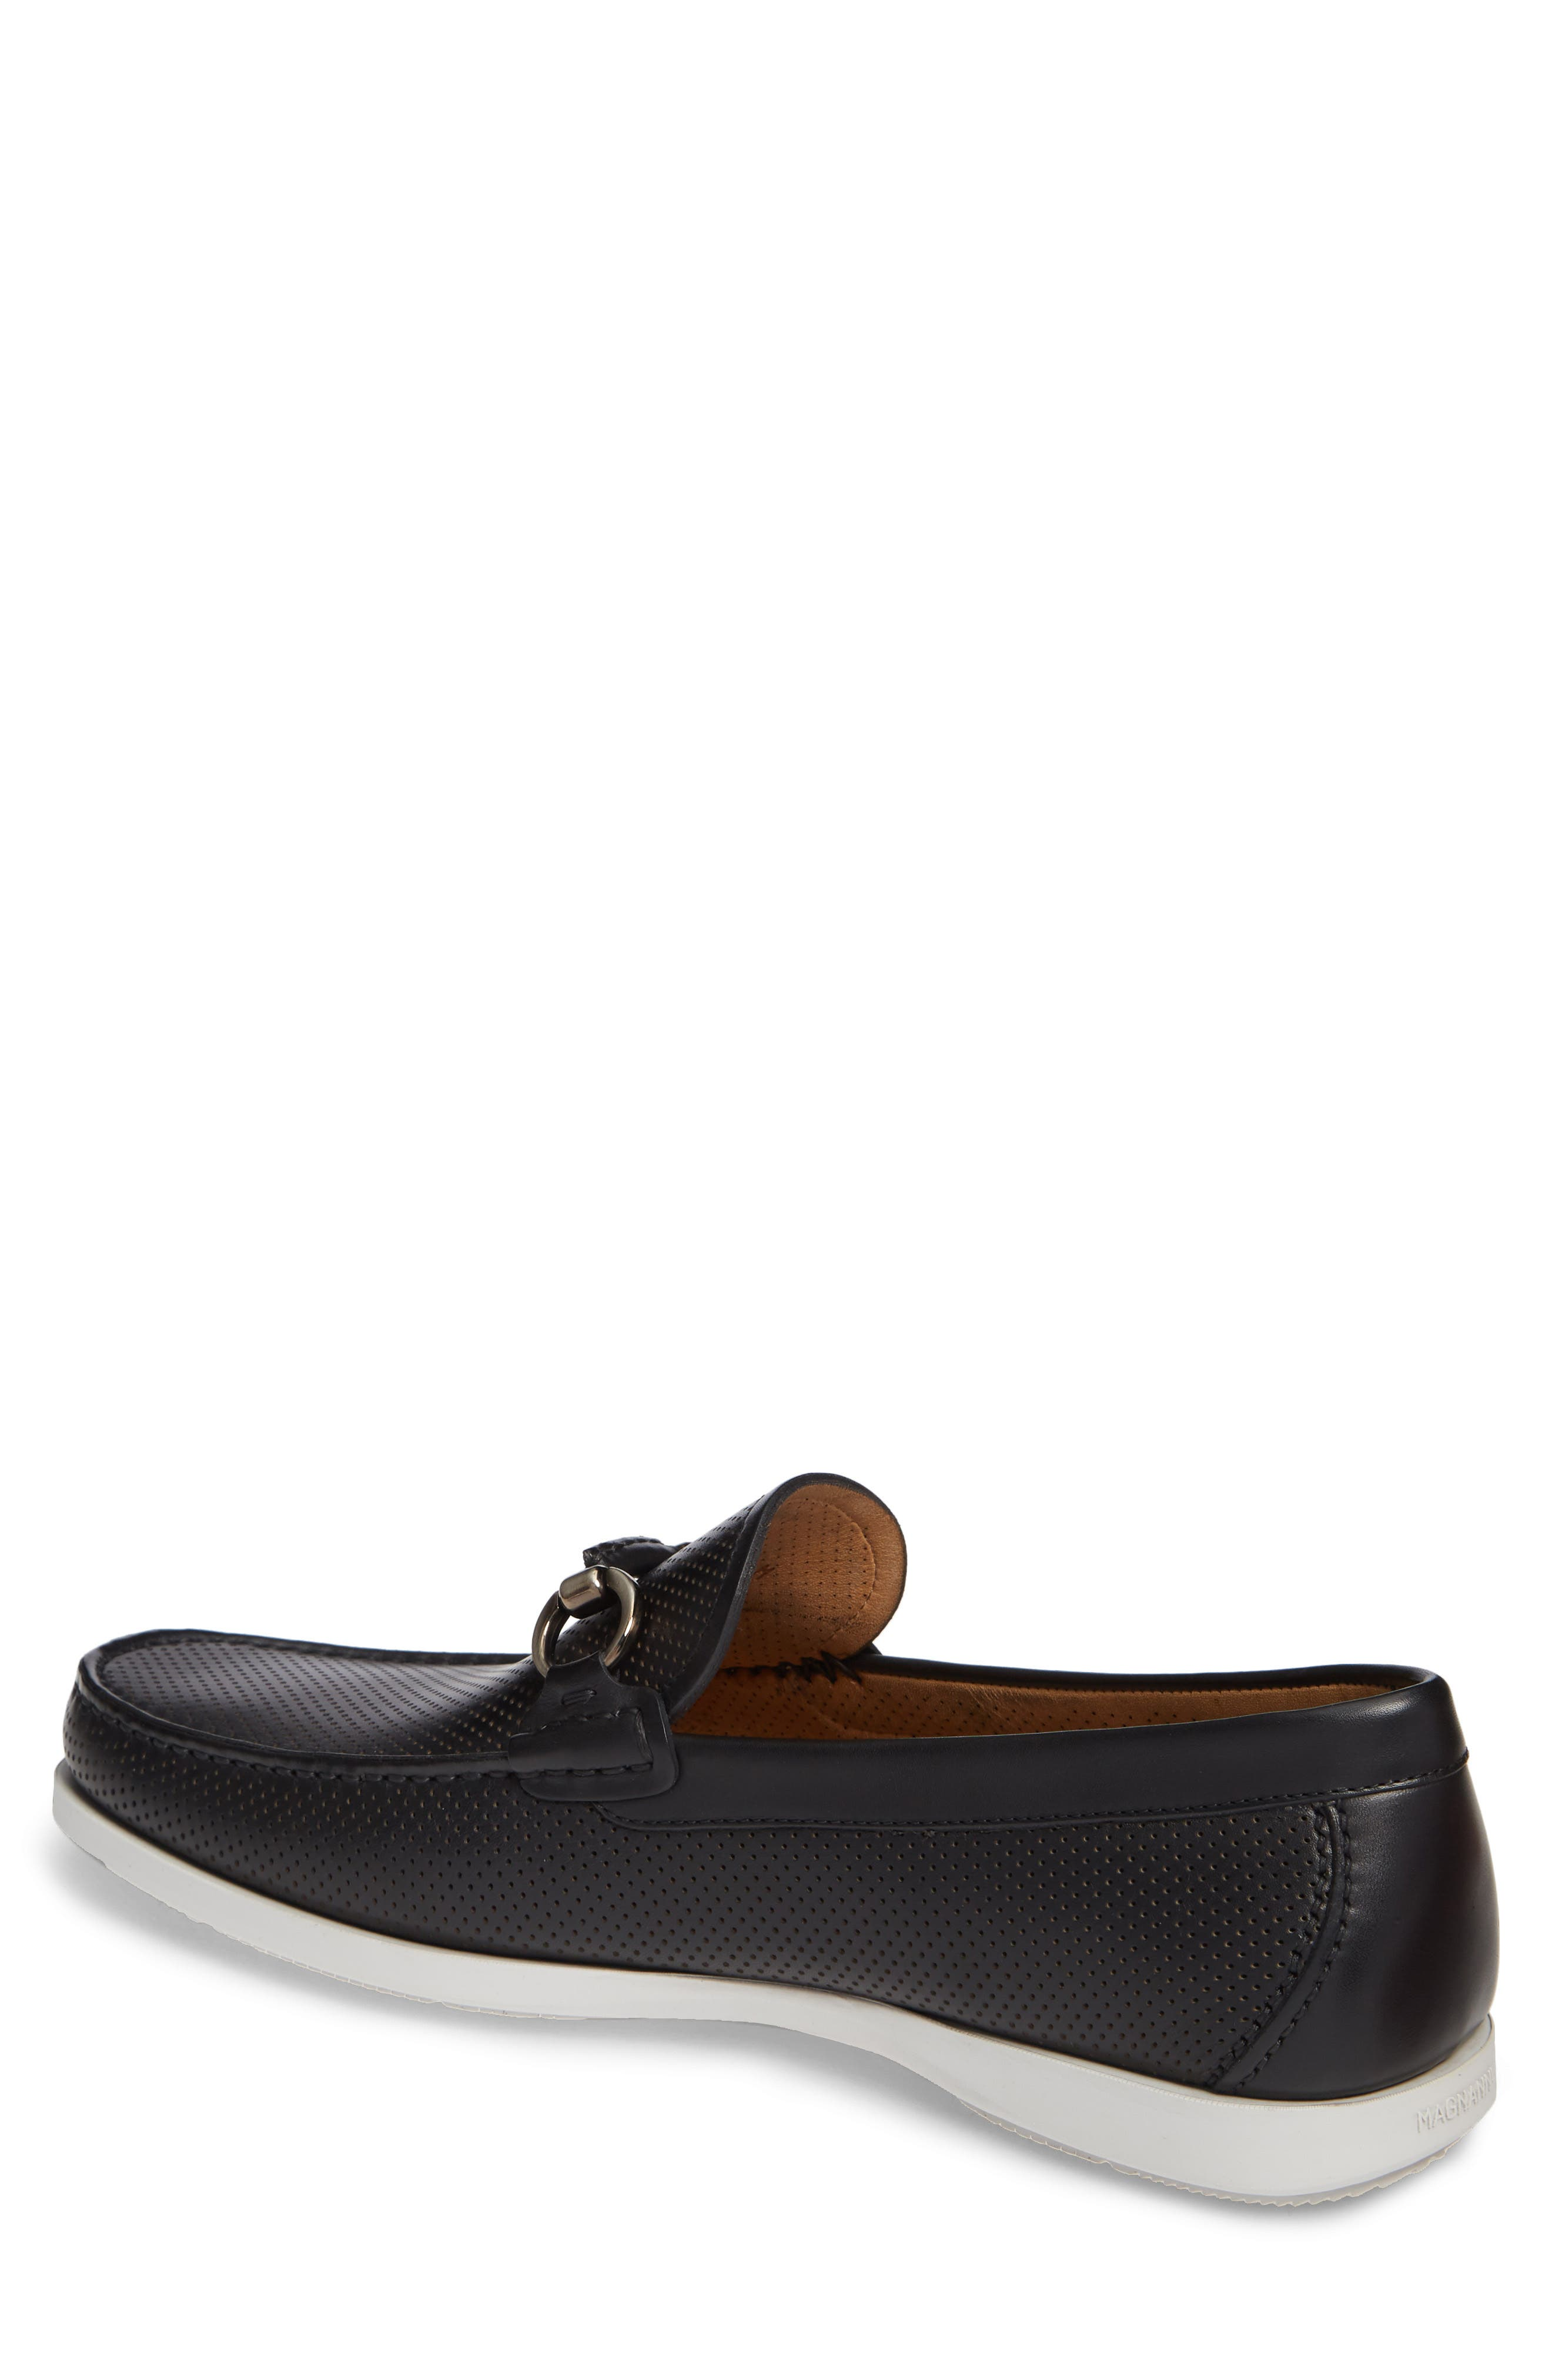 Beasley Perforated Moc Toe Bit Loafer,                             Alternate thumbnail 2, color,                             BLACK LEATHER